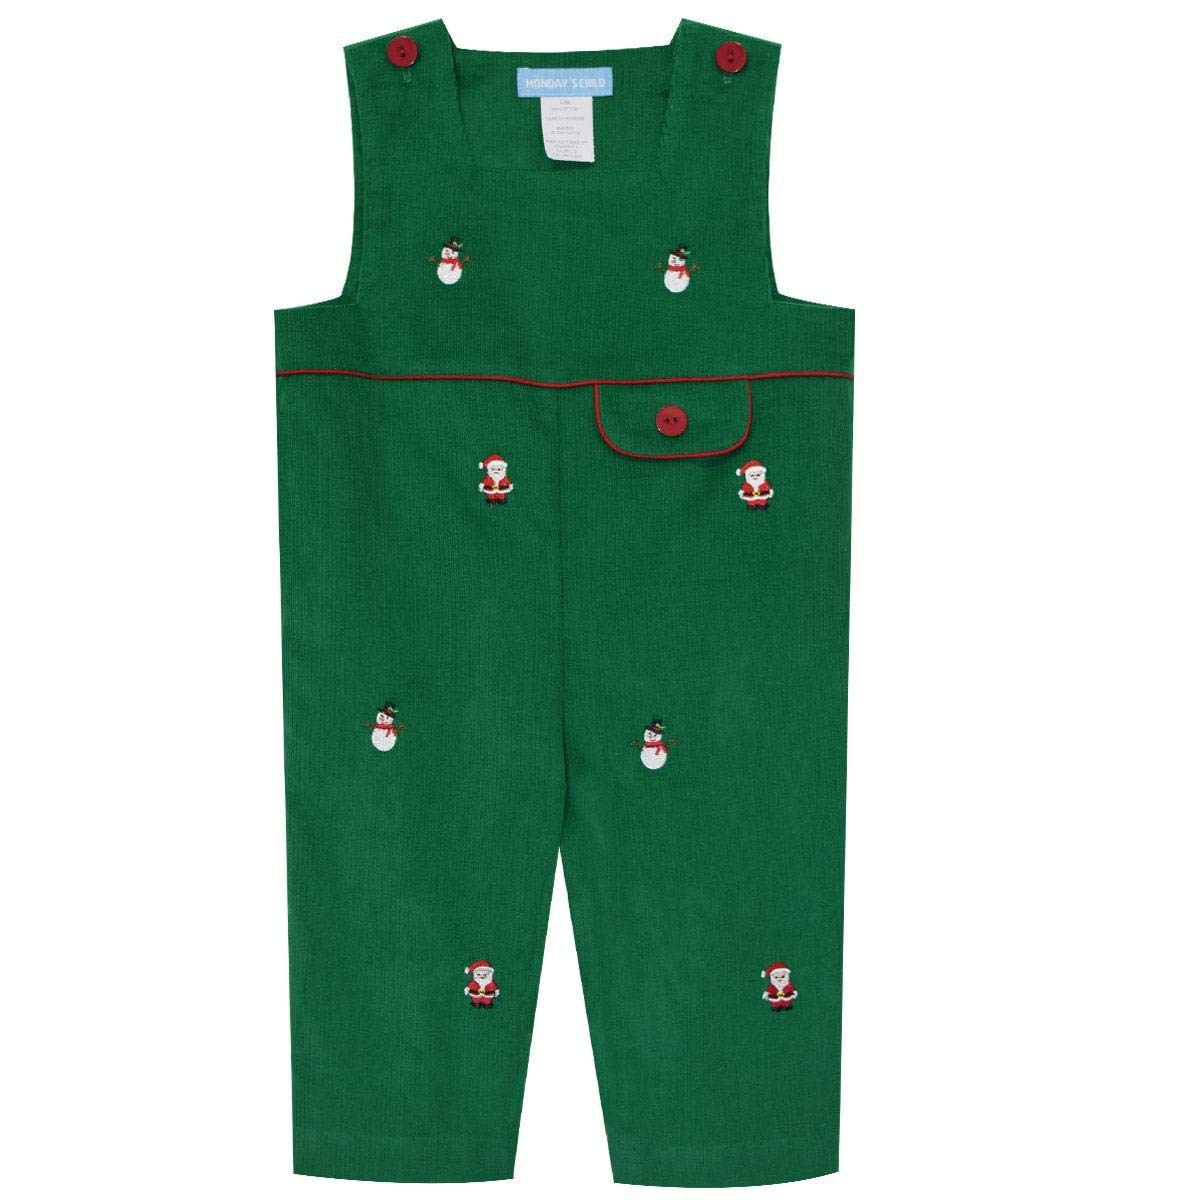 Christmas Embroidered Boys Overall from MONDAYS CHILD by Vive La Fete